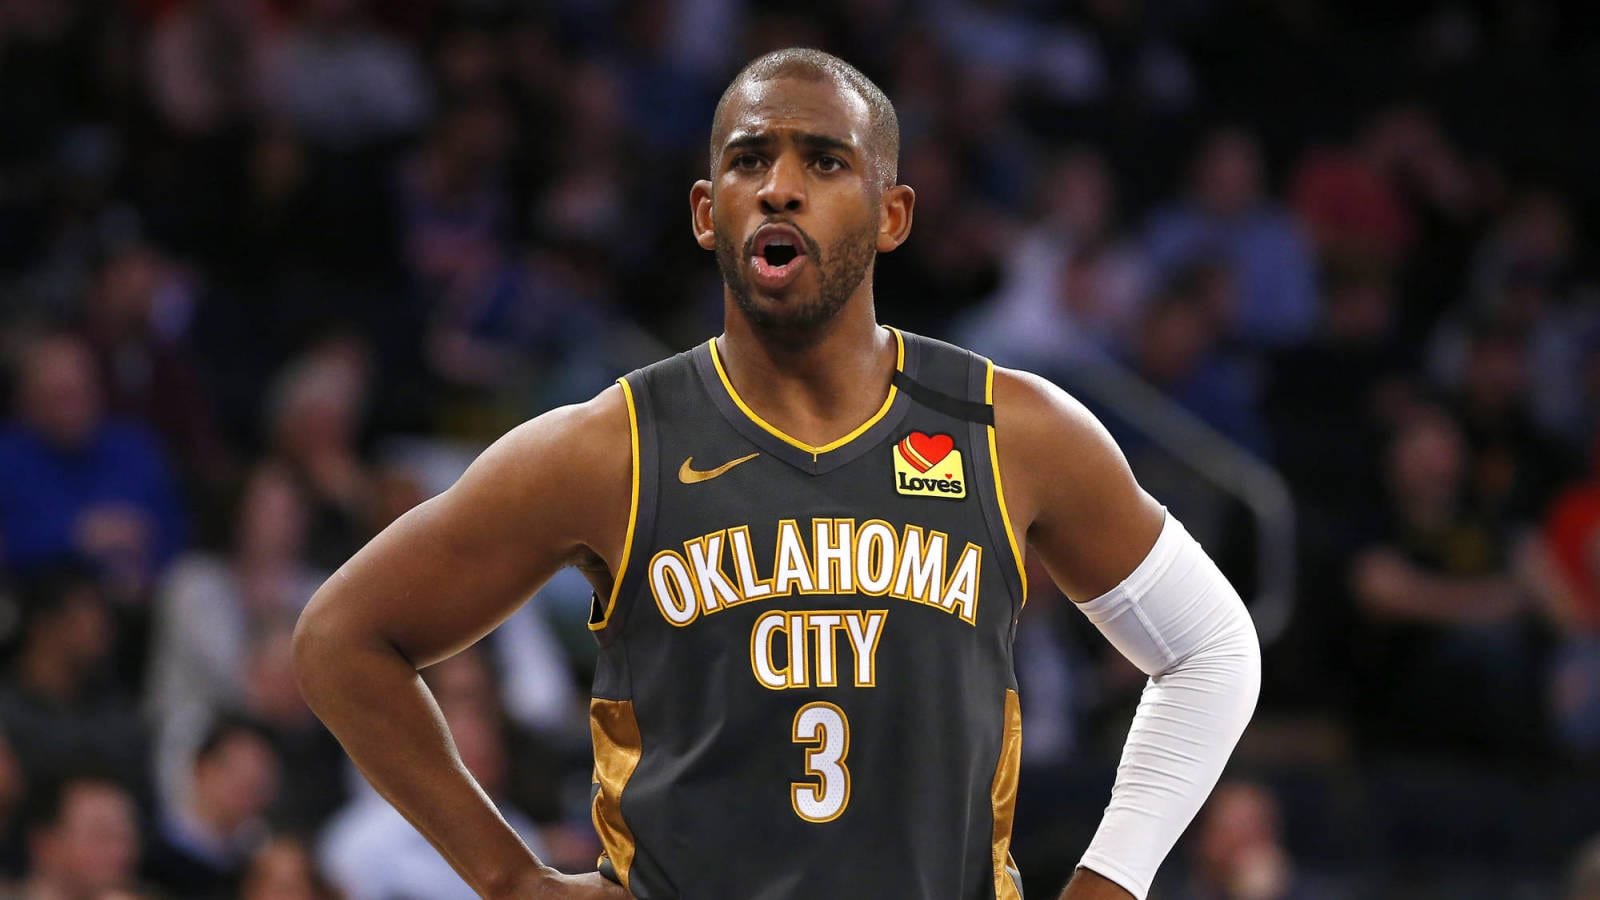 Chris Paul On The Move As Free Agency Begins